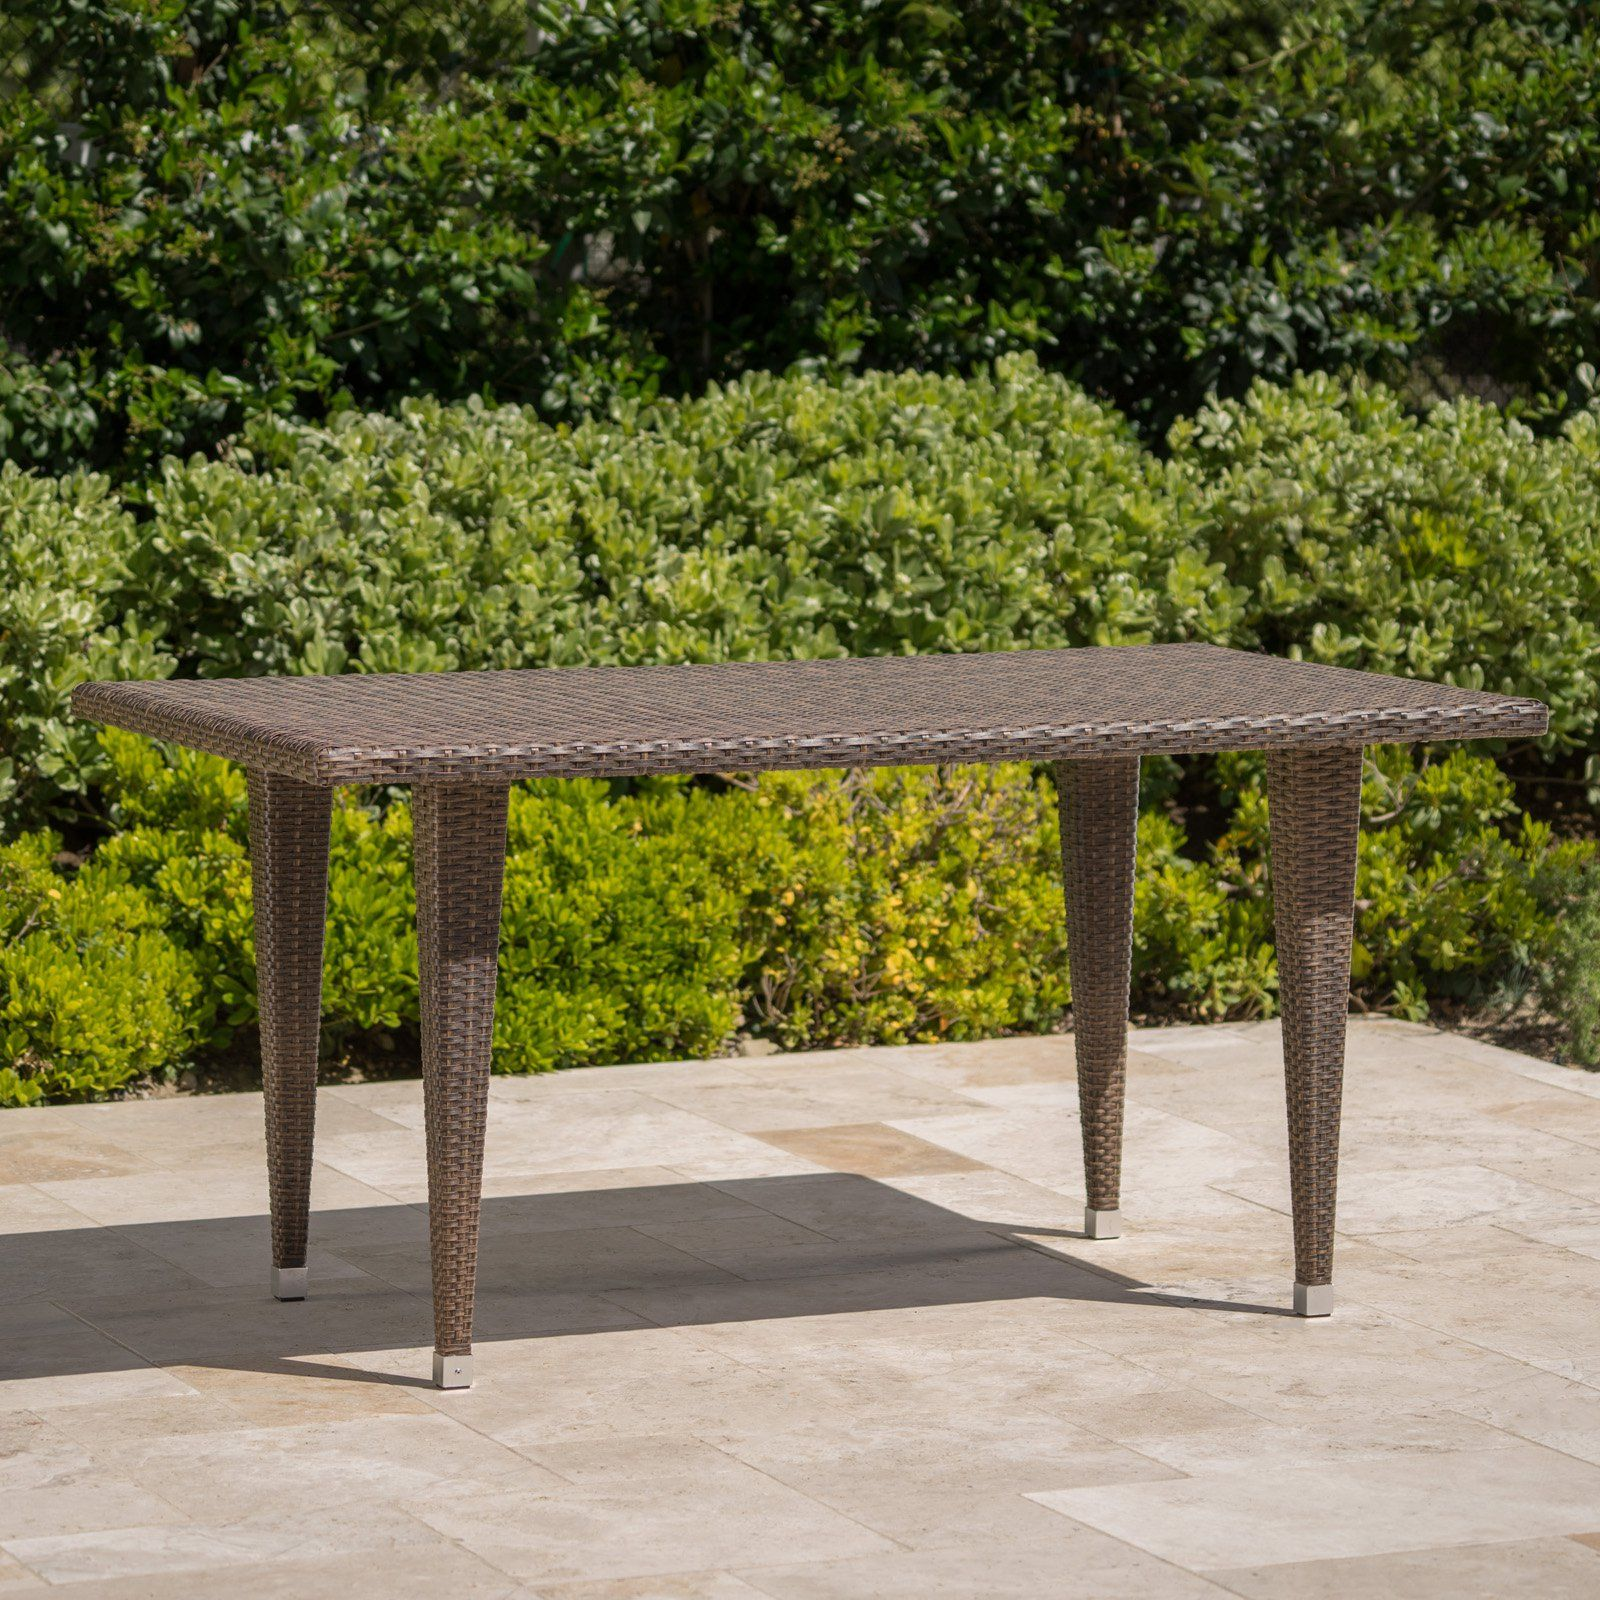 Dominica Outdoor Rectangular Wicker Dining Table Patio Furniture